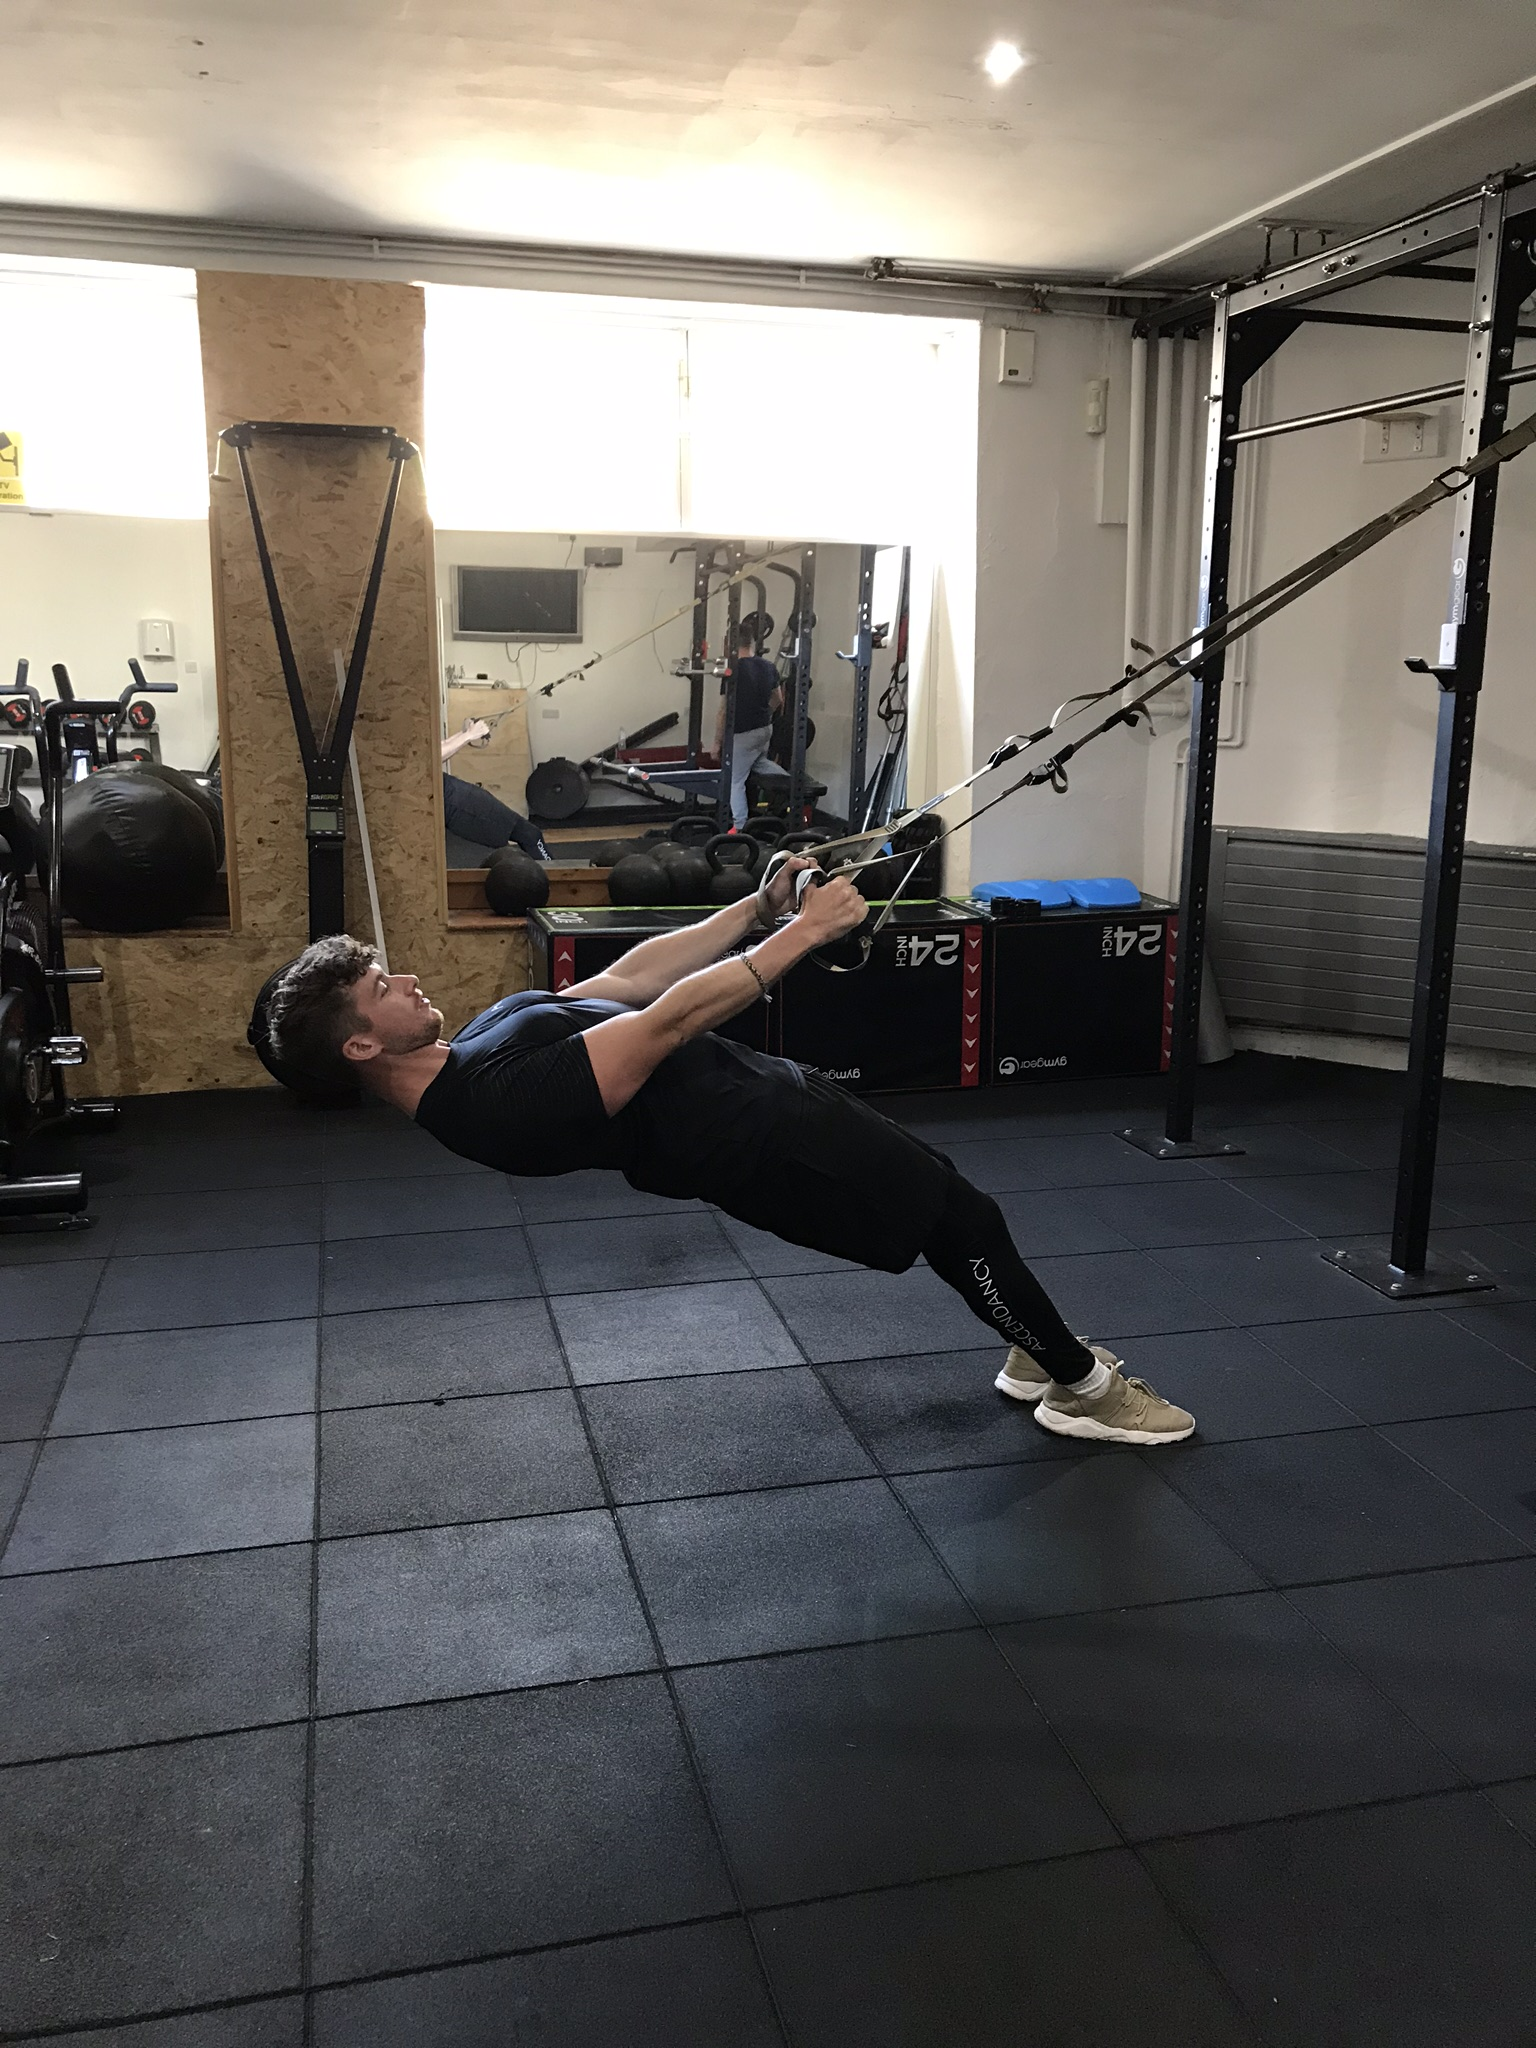 Inverted row starting position.